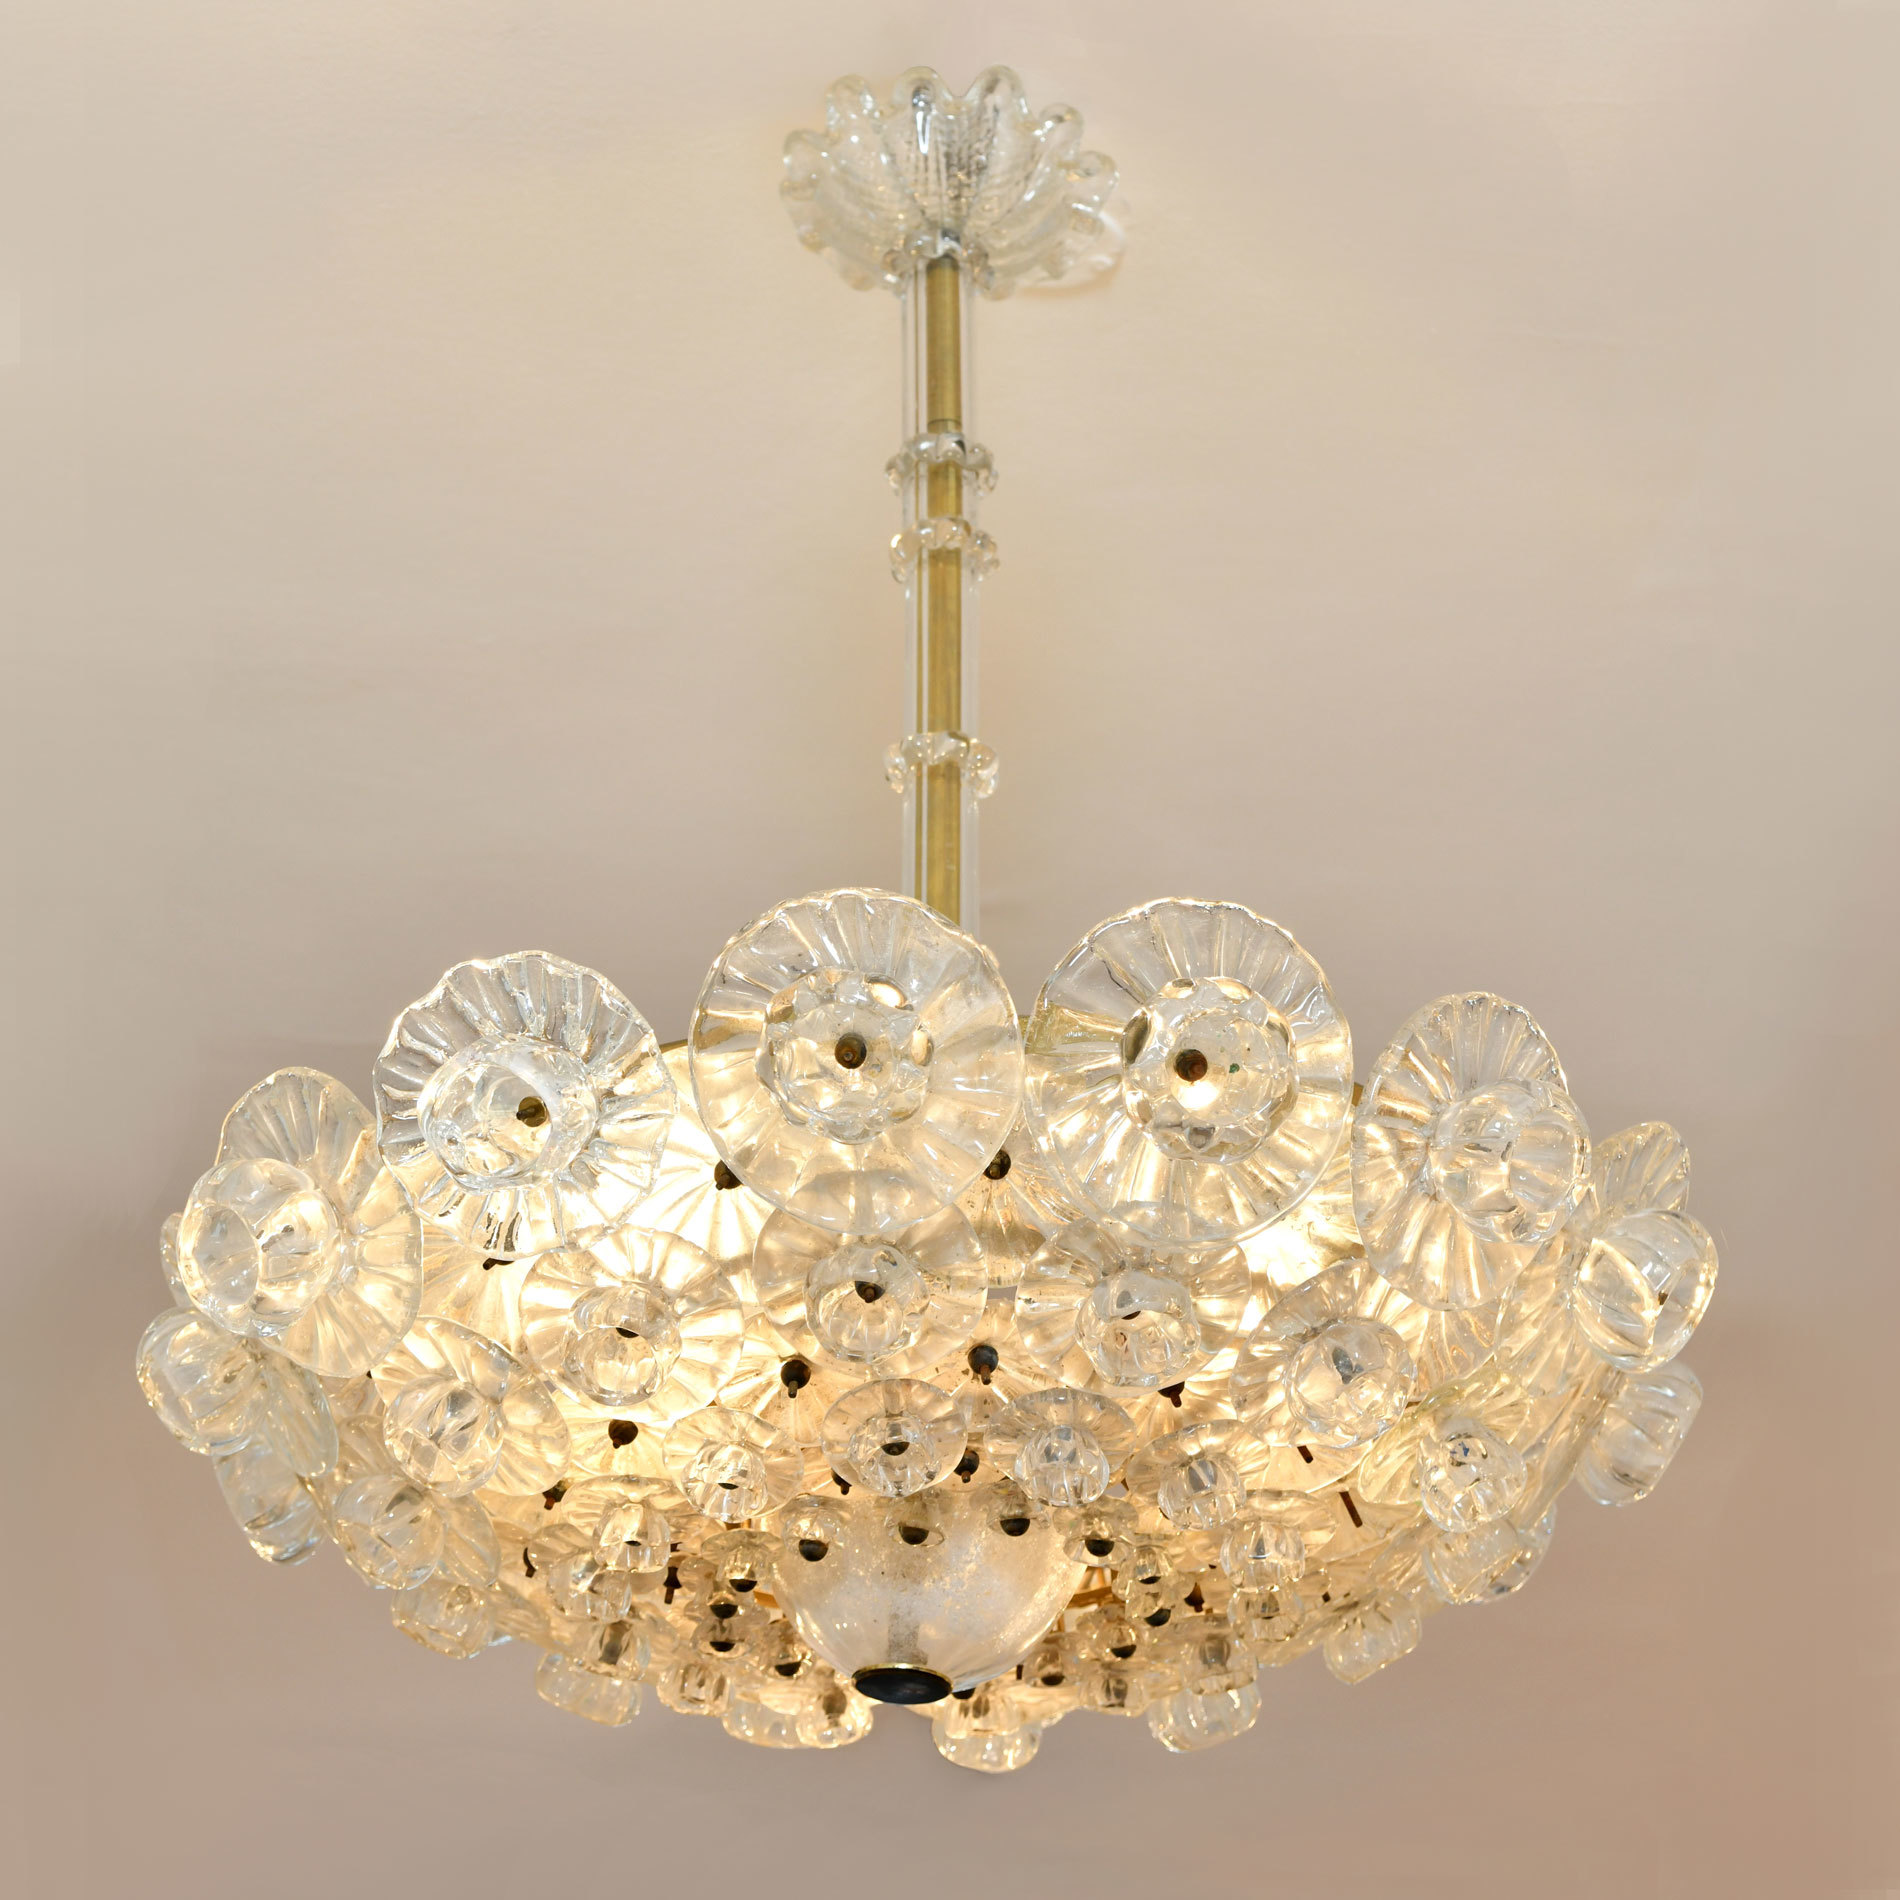 The image for Murano Glass Chandelier By Barovier 01